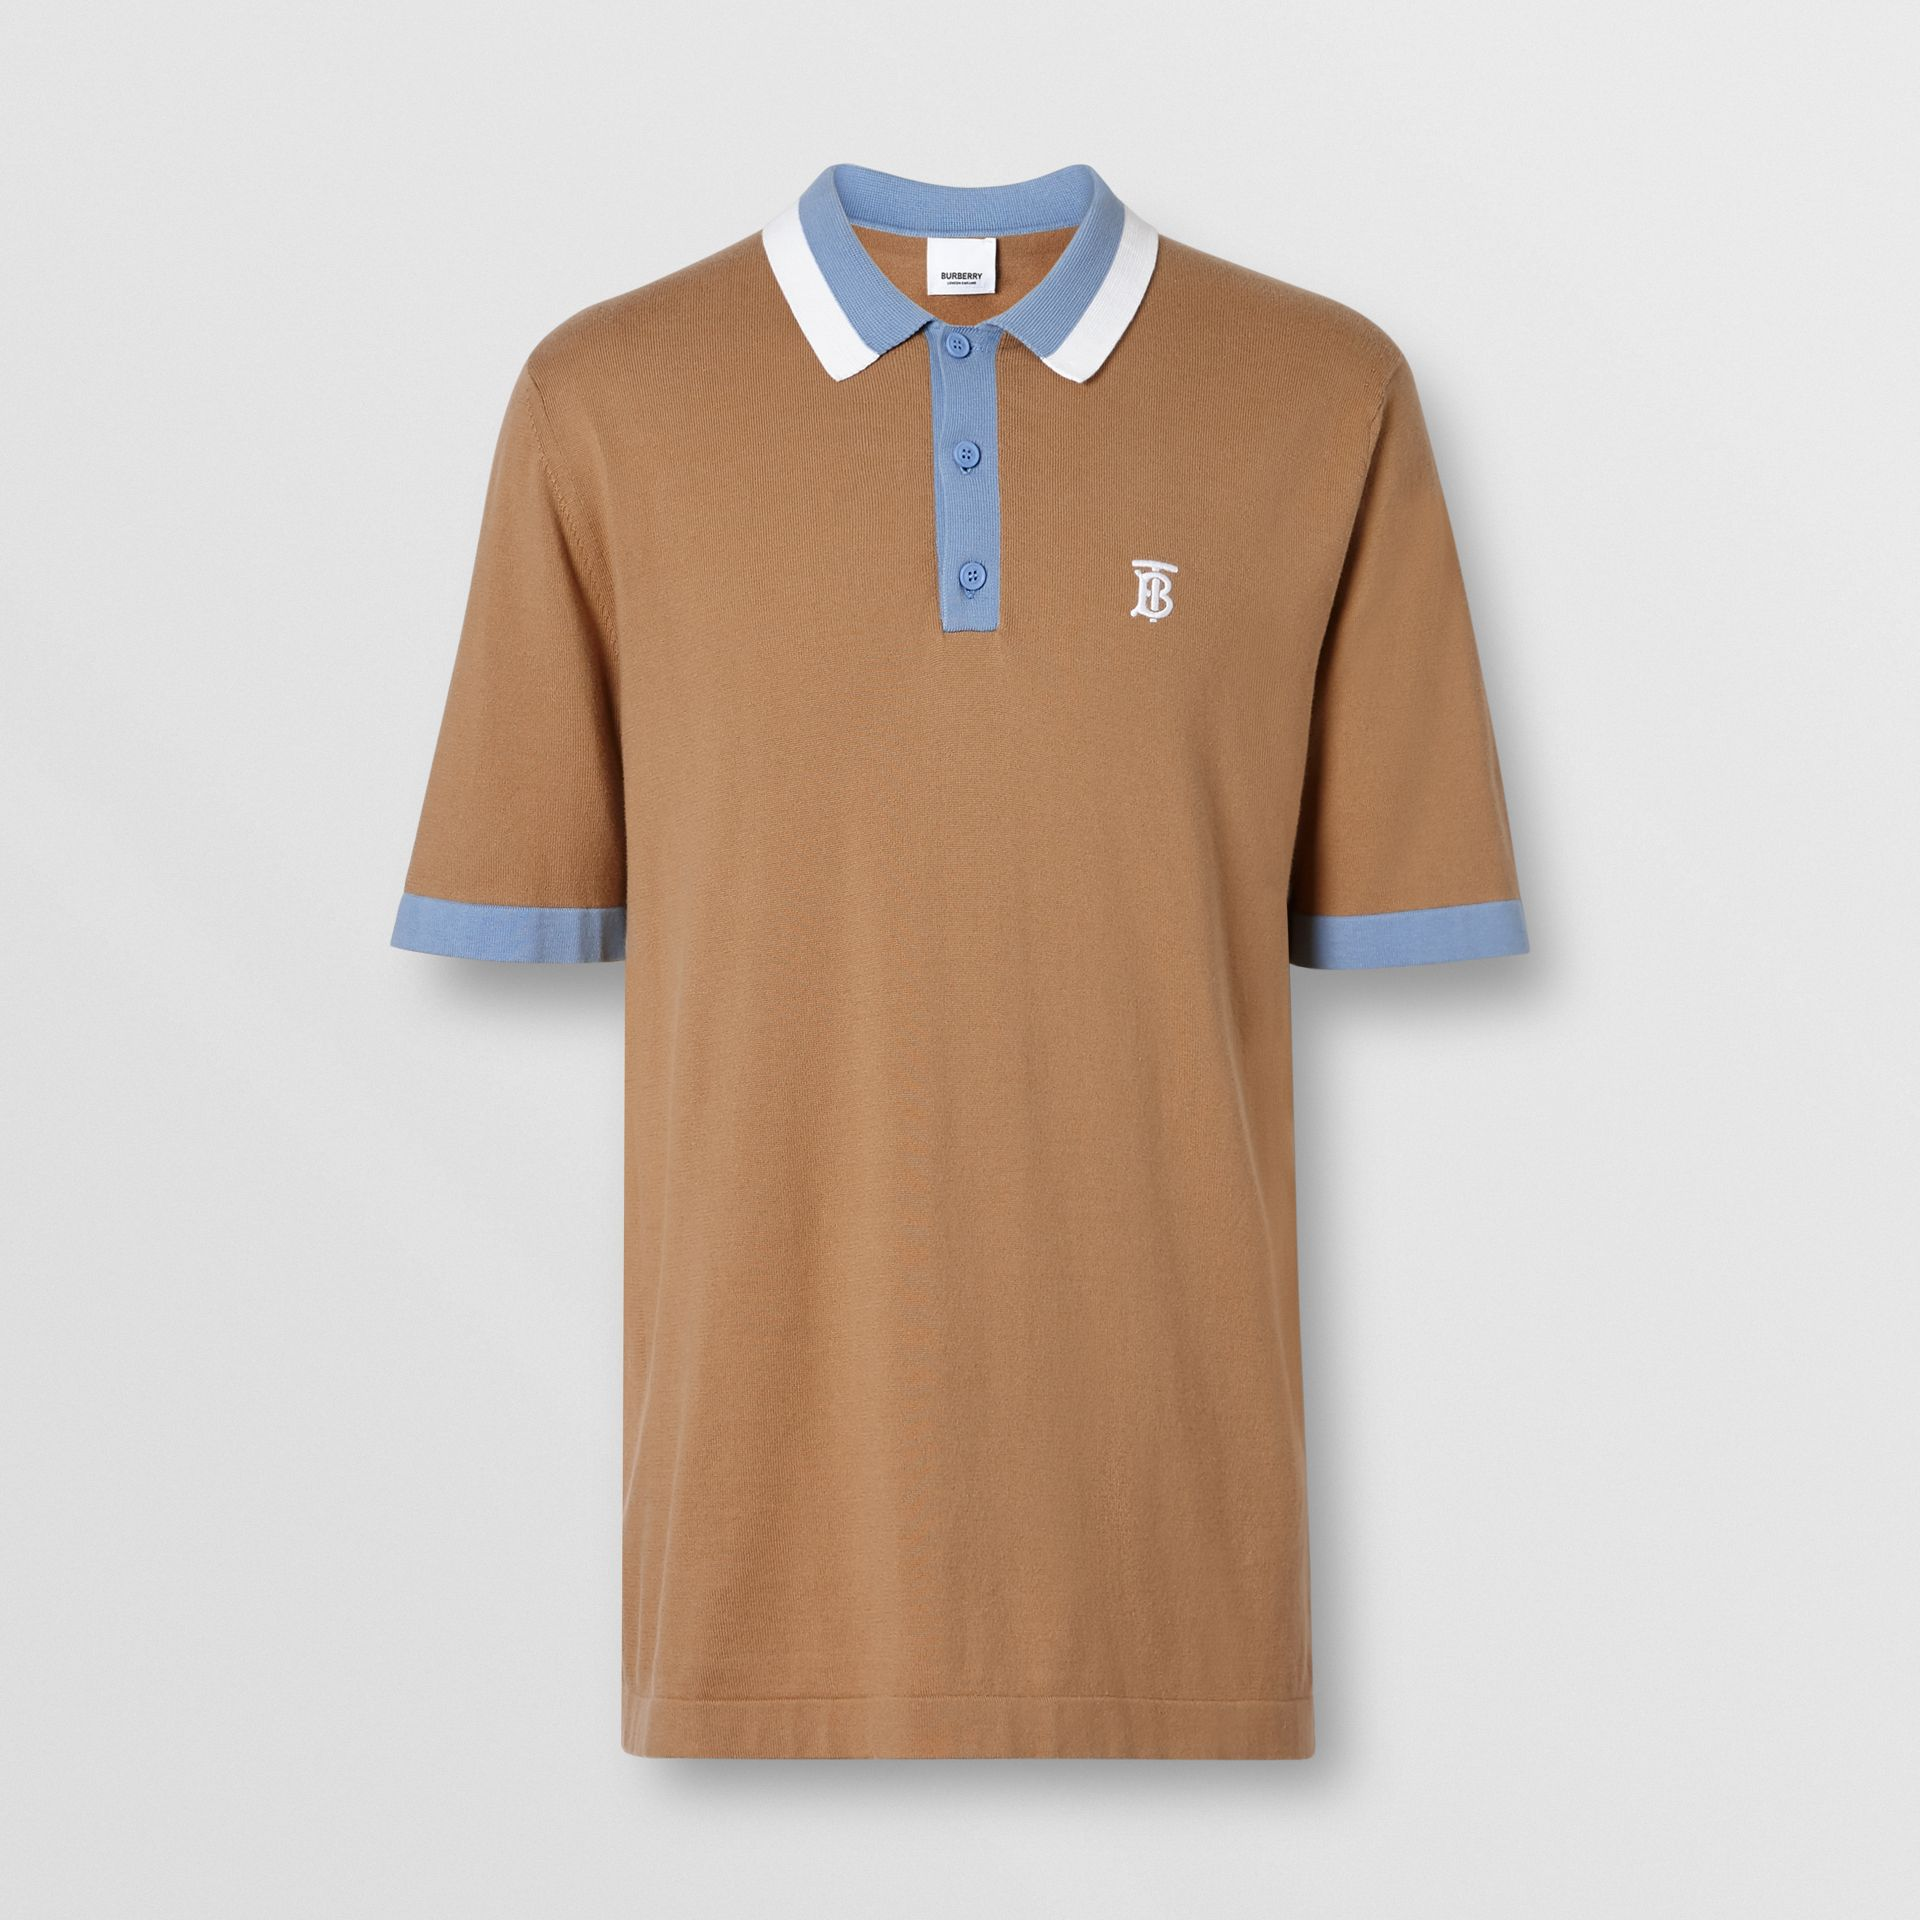 Monogram Motif Tipped Cotton Polo Shirt in Camel - Men | Burberry United States - gallery image 3